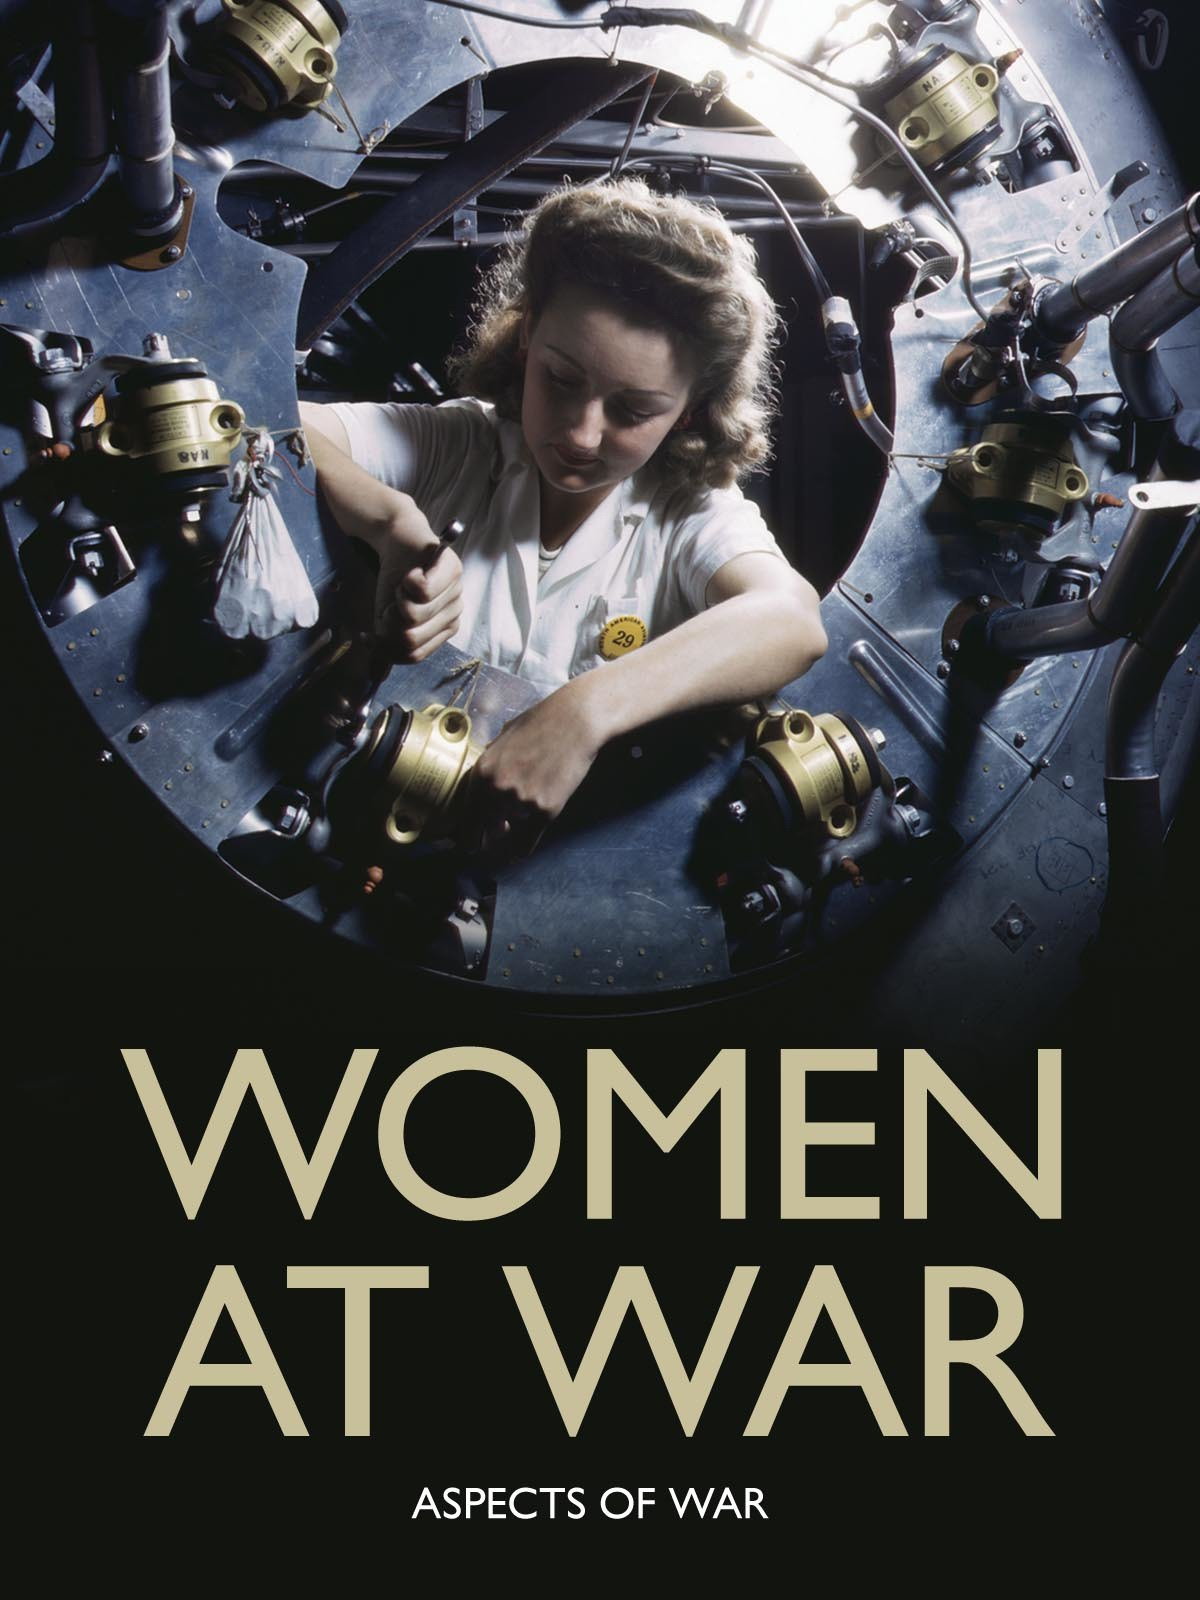 Women at War: Aspects of War on Amazon Prime Instant Video UK